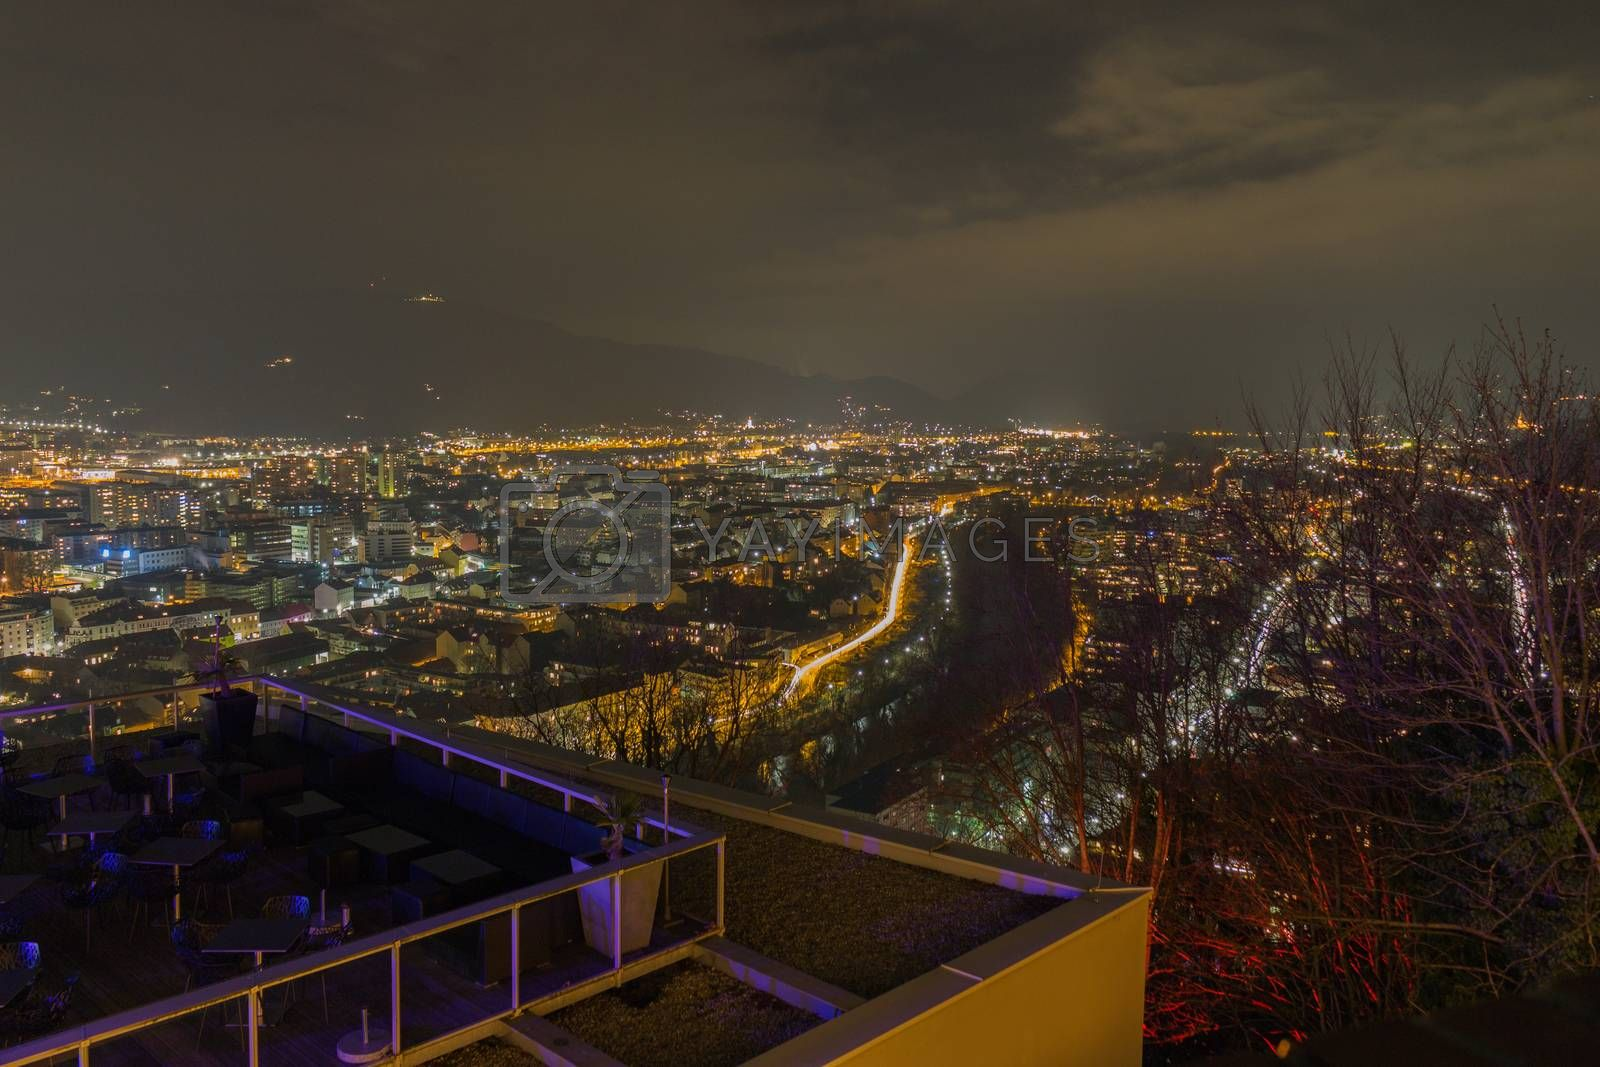 Sea of lights over the city of Graz in the Styria, Austria